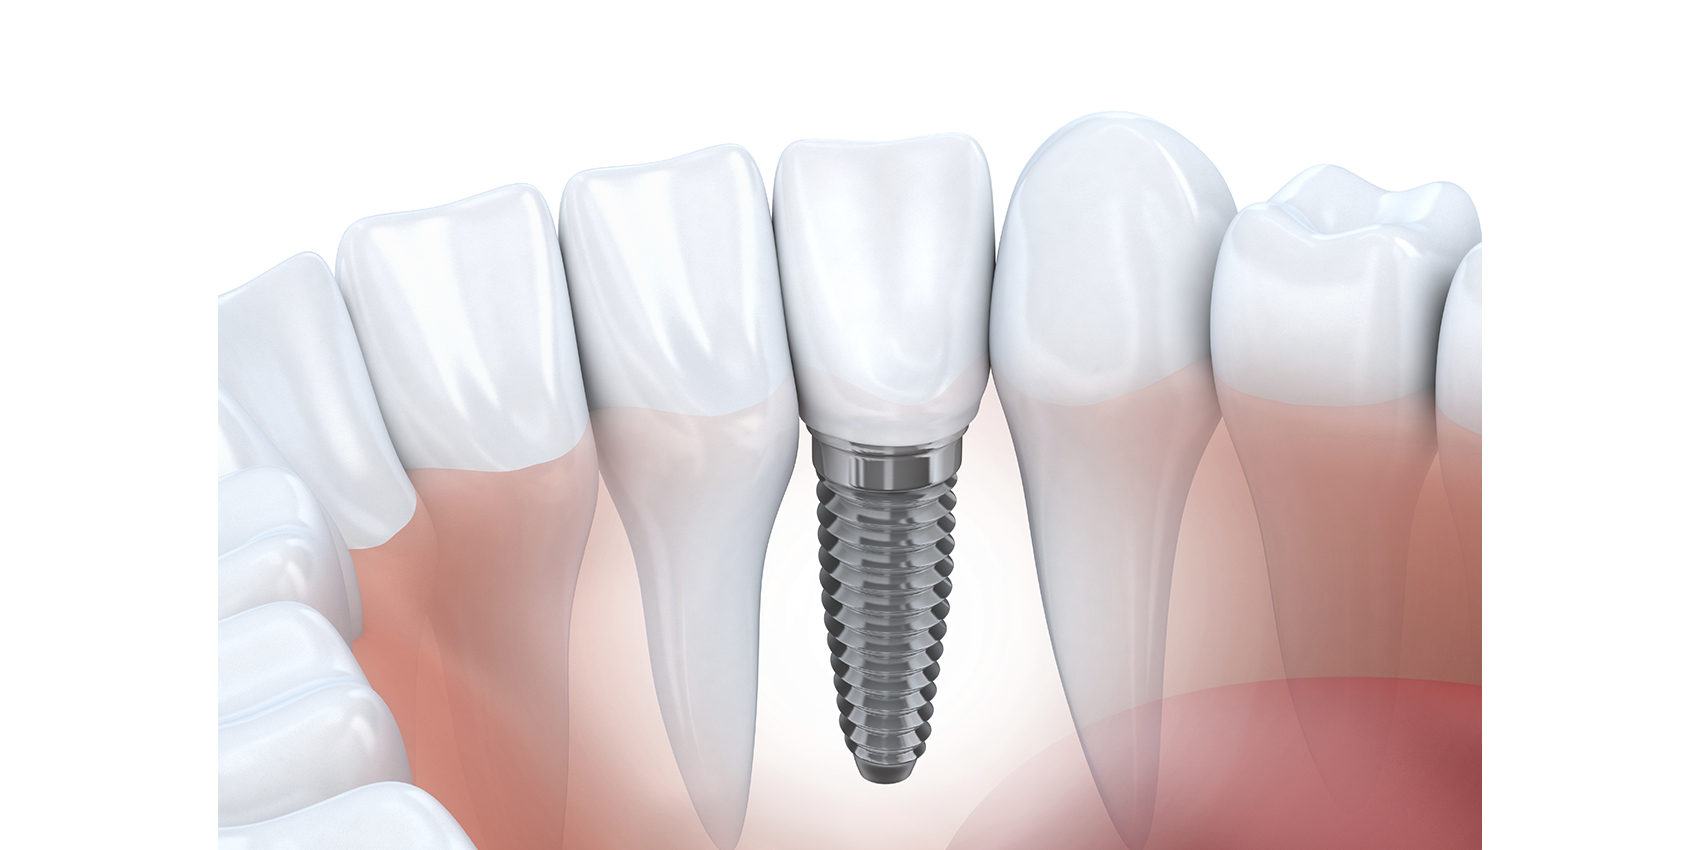 Implant dentaire : Un implant remarquable ?